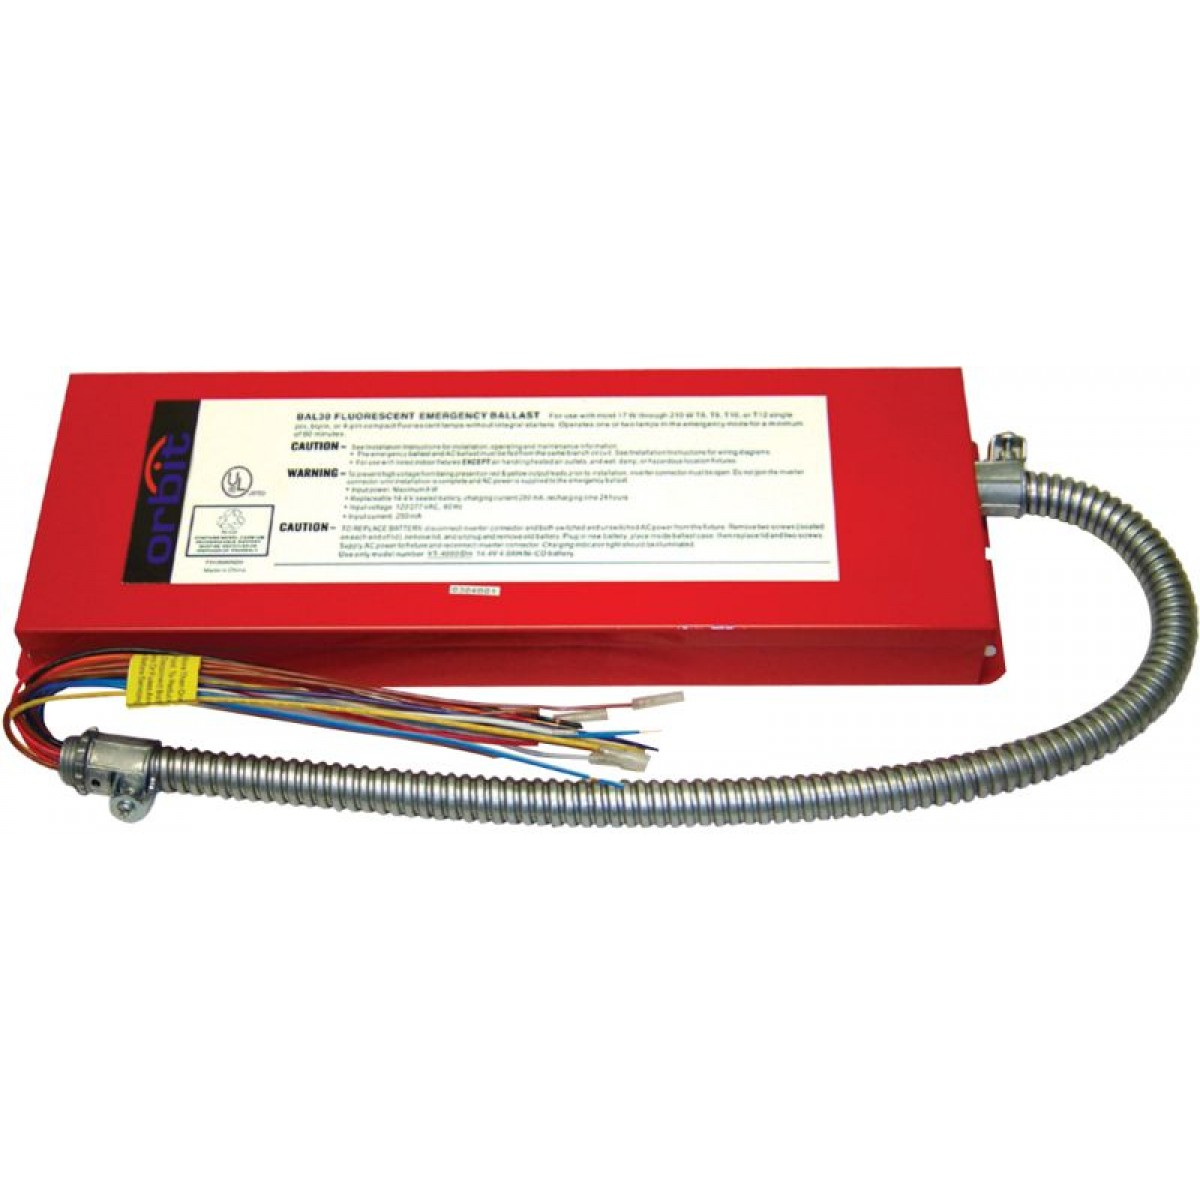 hight resolution of bal3000 emergency ballasts exit emergency lighting 4 light ballast wiring diagram bal3000 em ballast wiring diagram